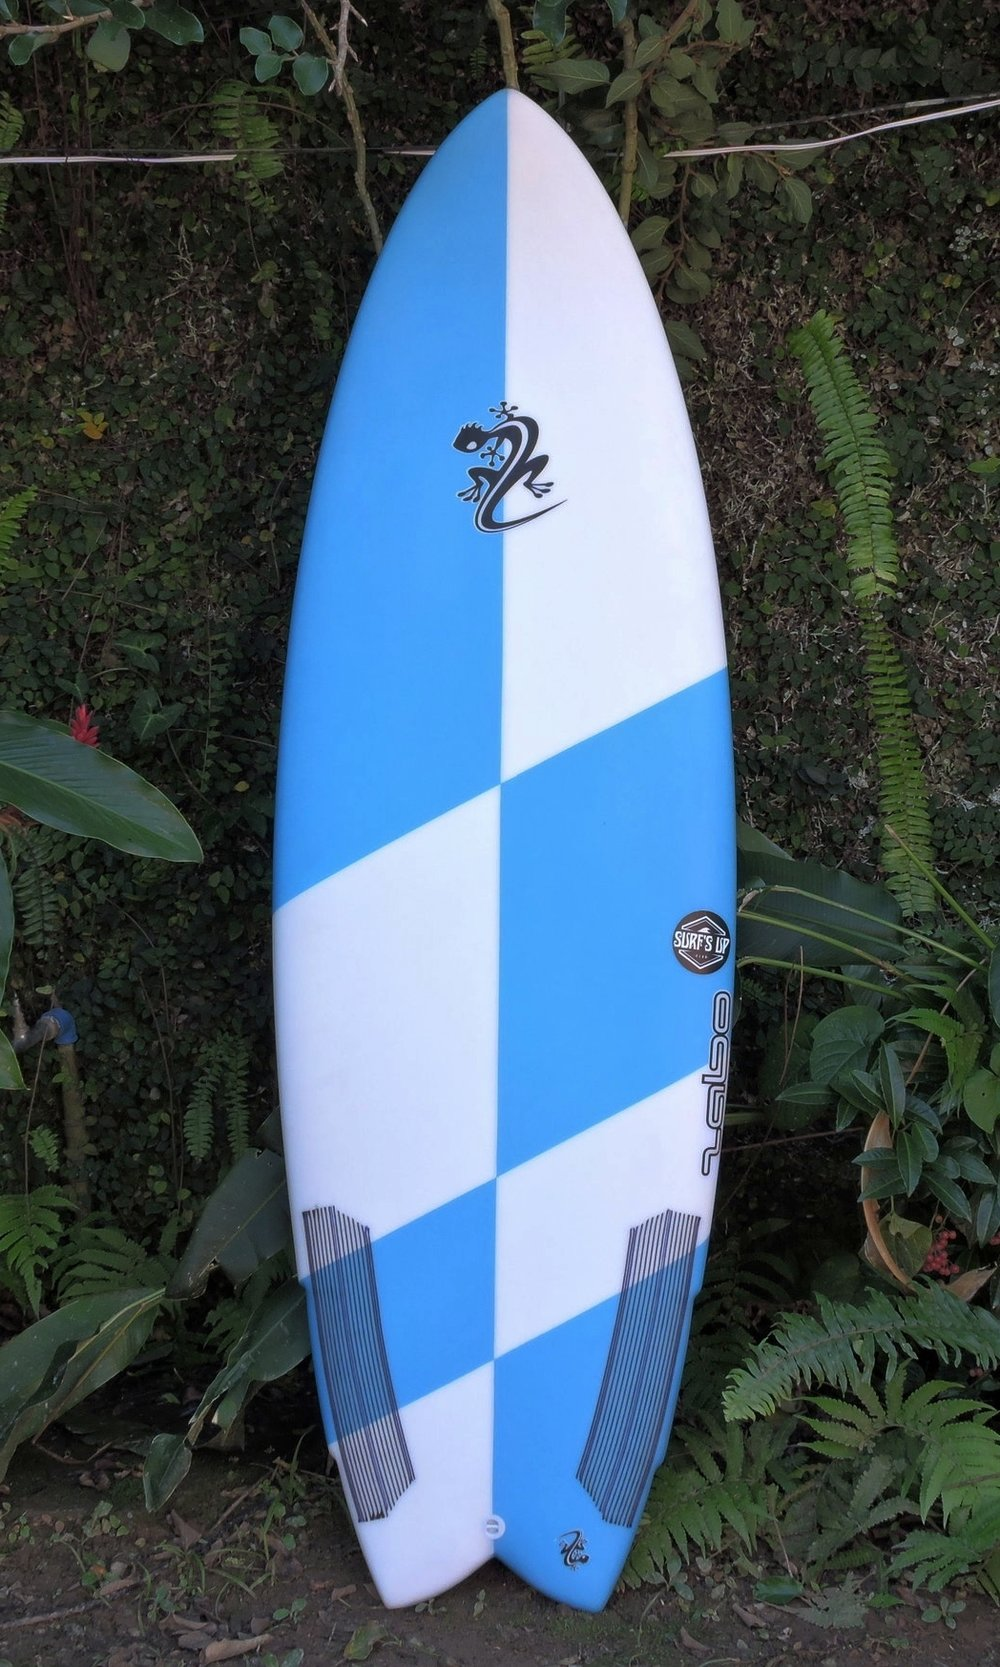 Torped - Zabo Surfboards5'5